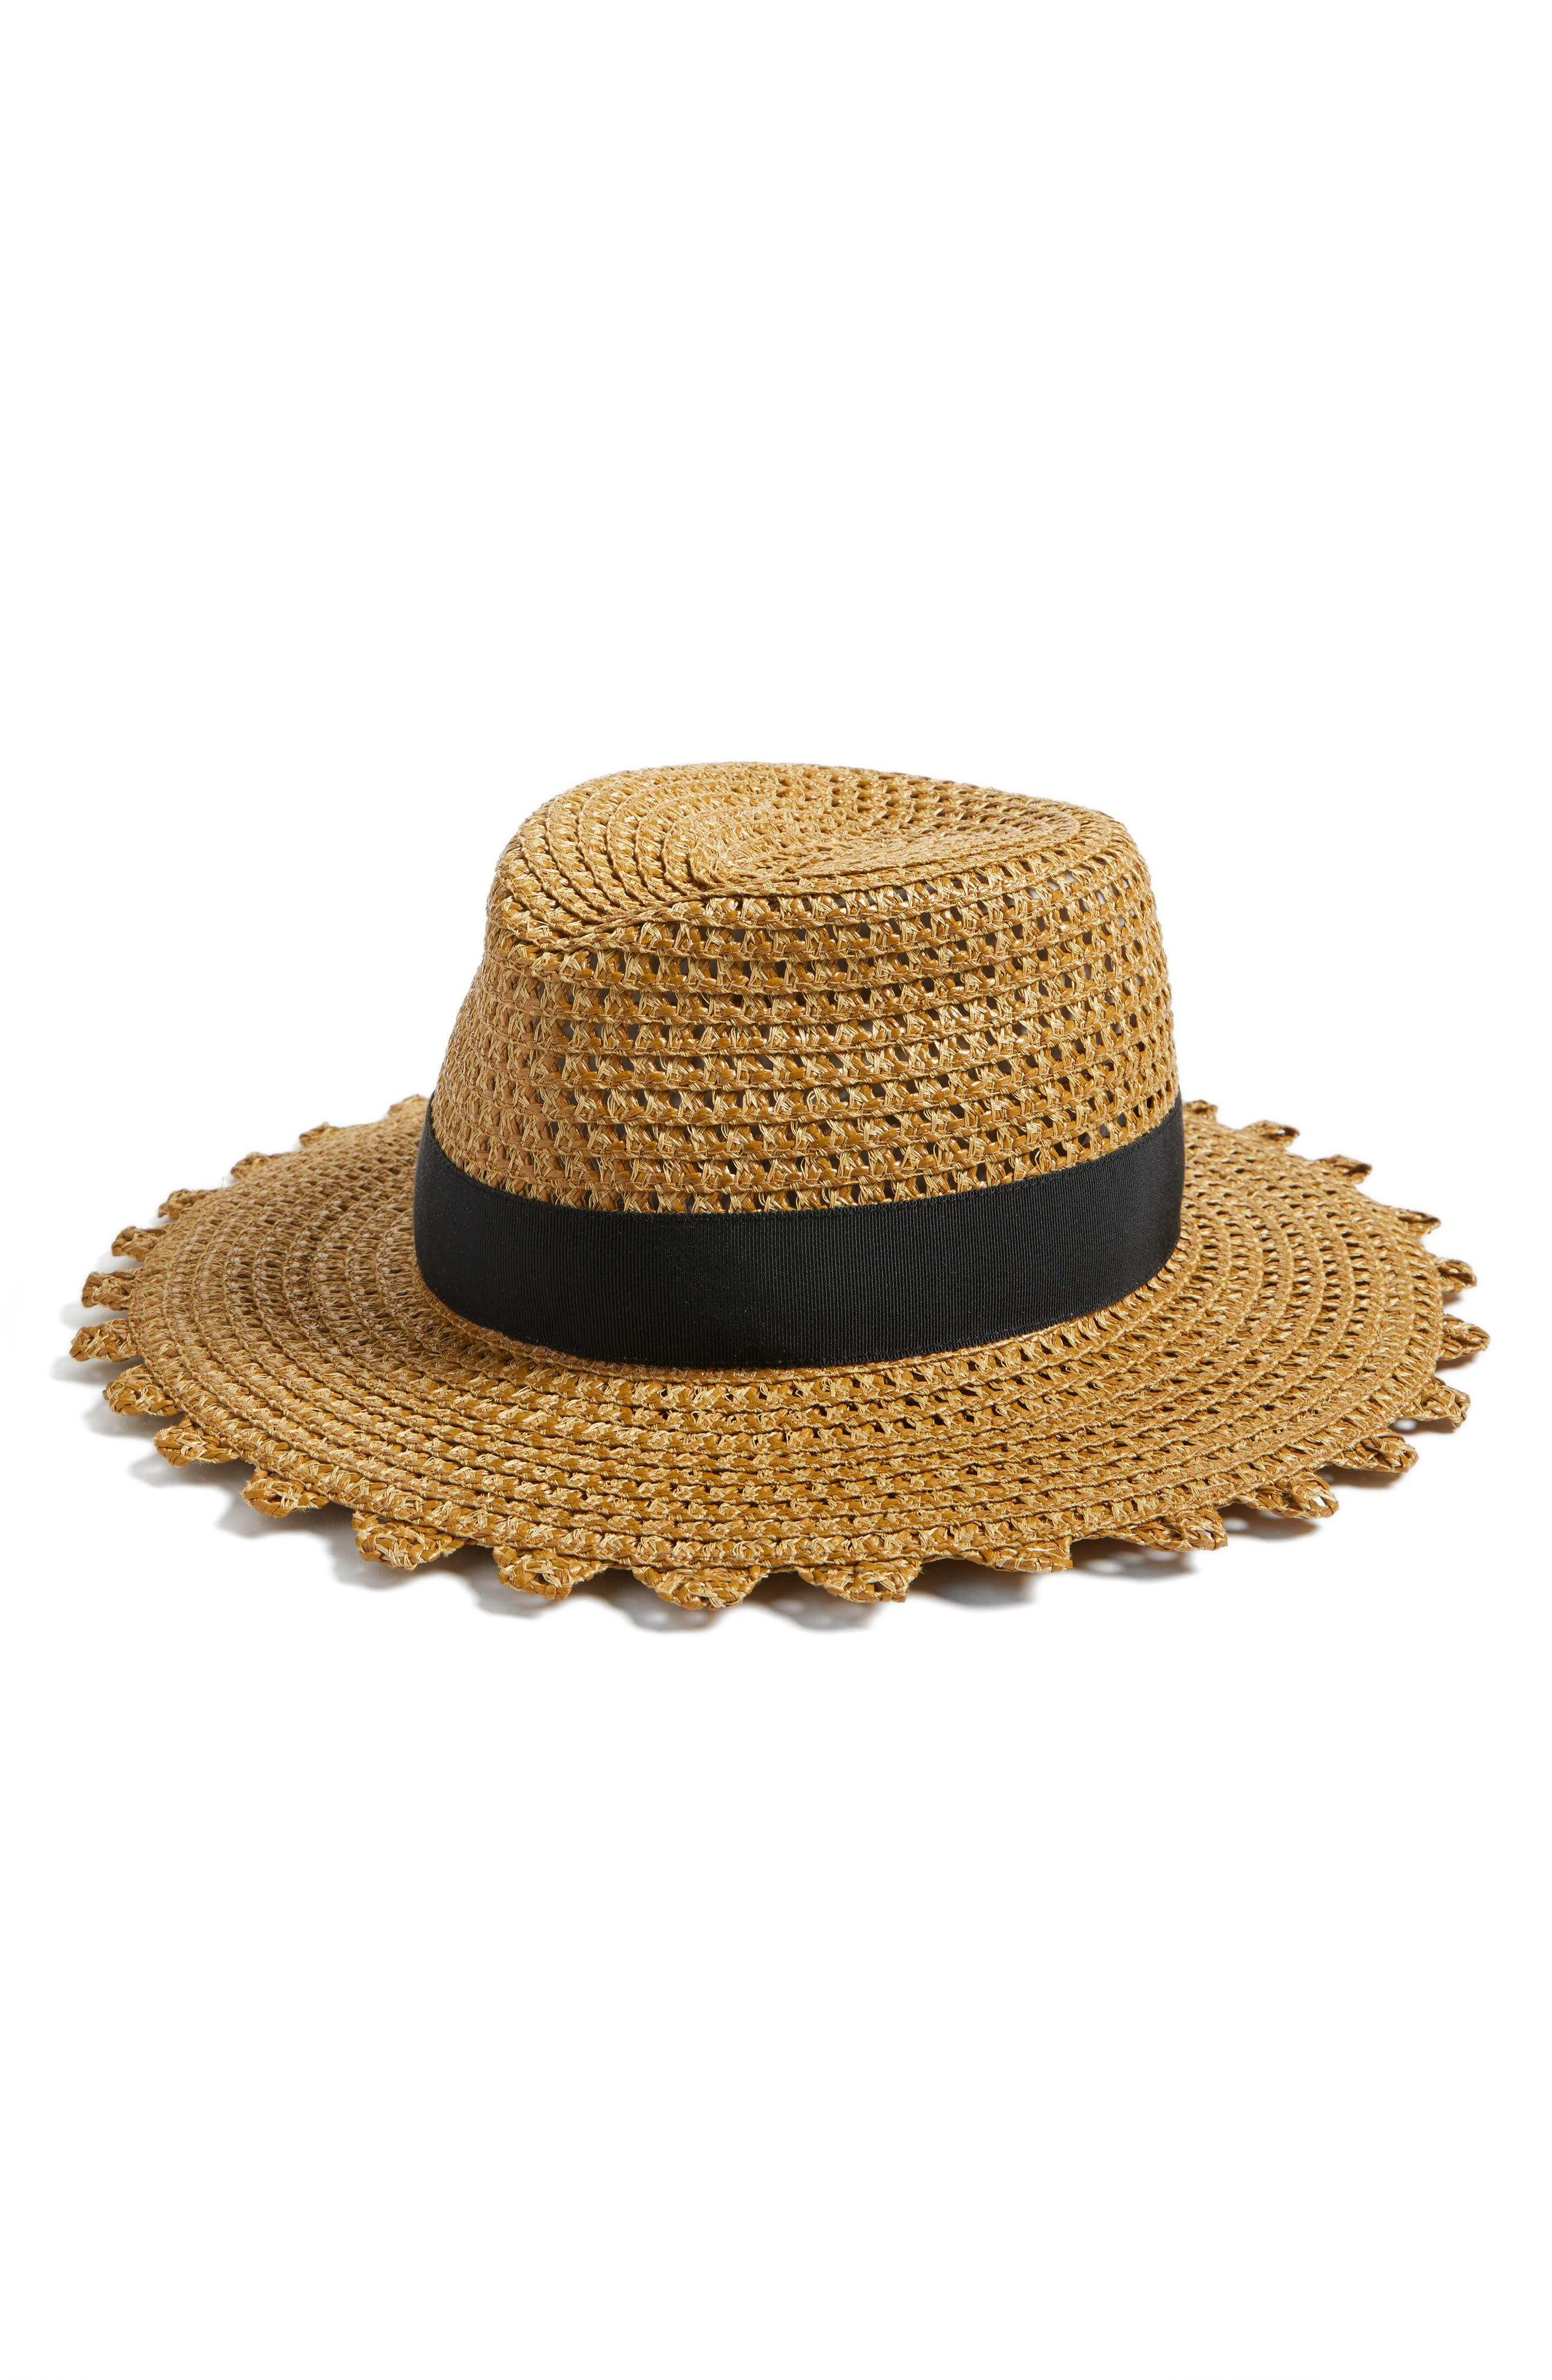 Cannes Squishee<sup>®</sup> Straw Hat,                             Main thumbnail 1, color,                             Natural/ Black